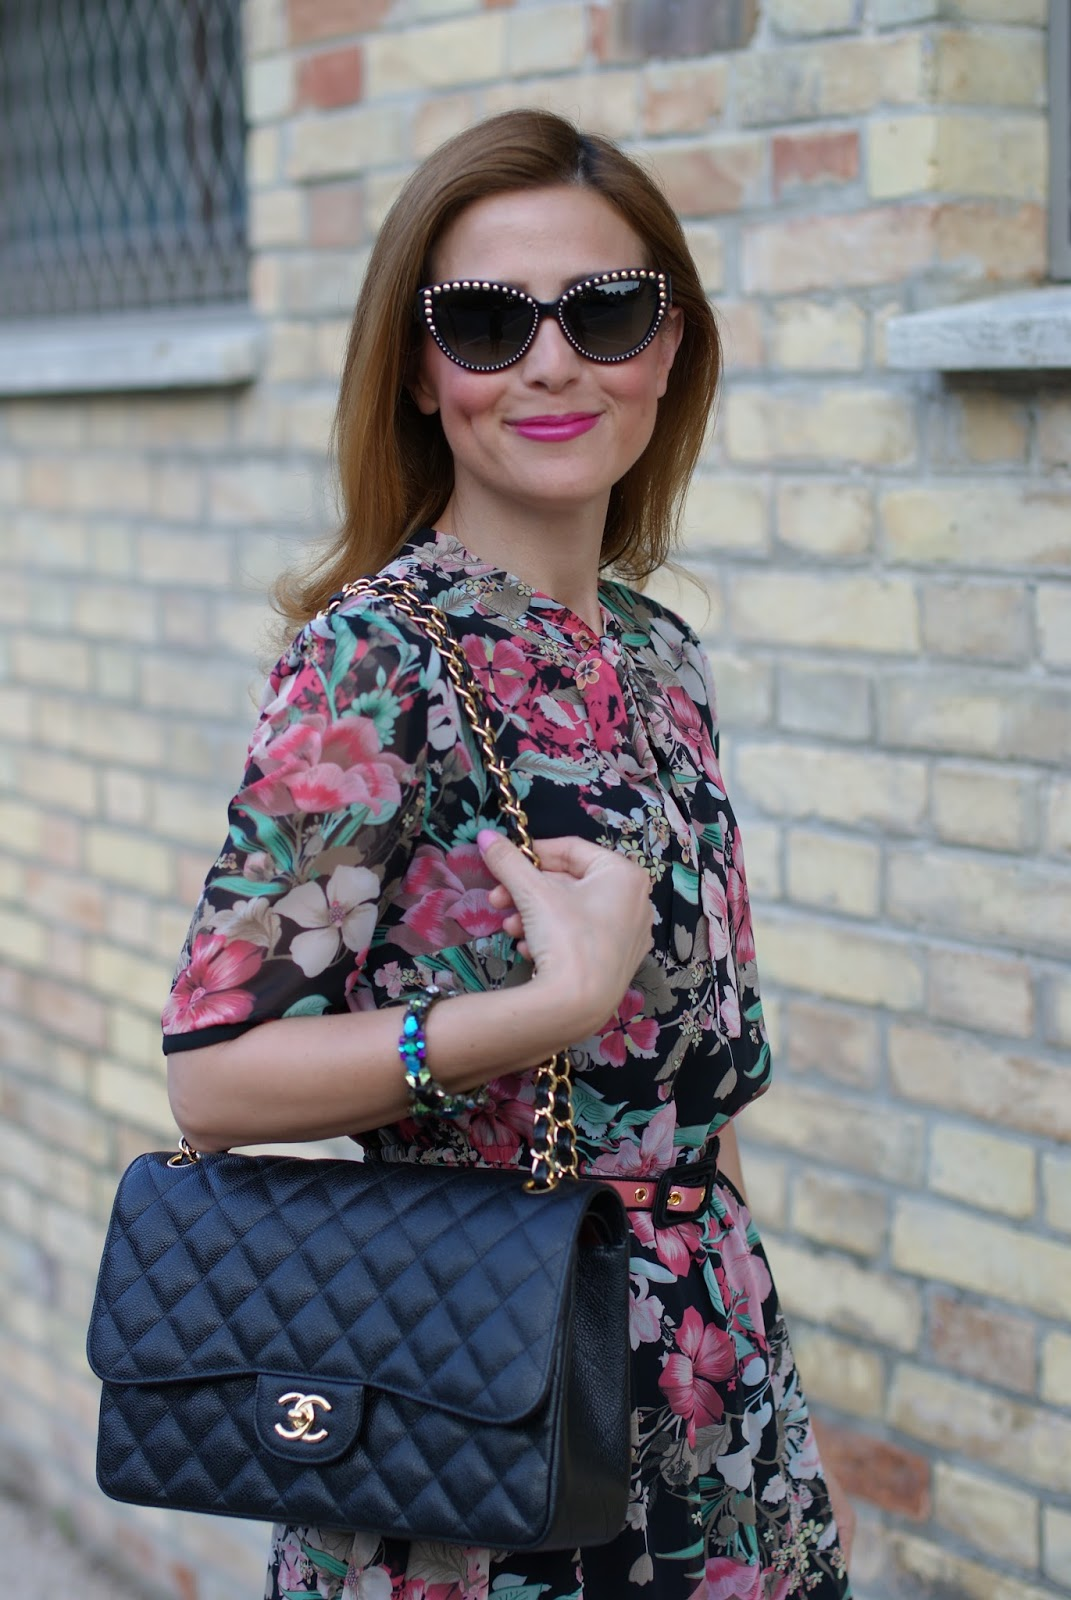 Floral bon ton dress and Chanel bag on Fashion and Cookies fashion blog, fashion blogger style